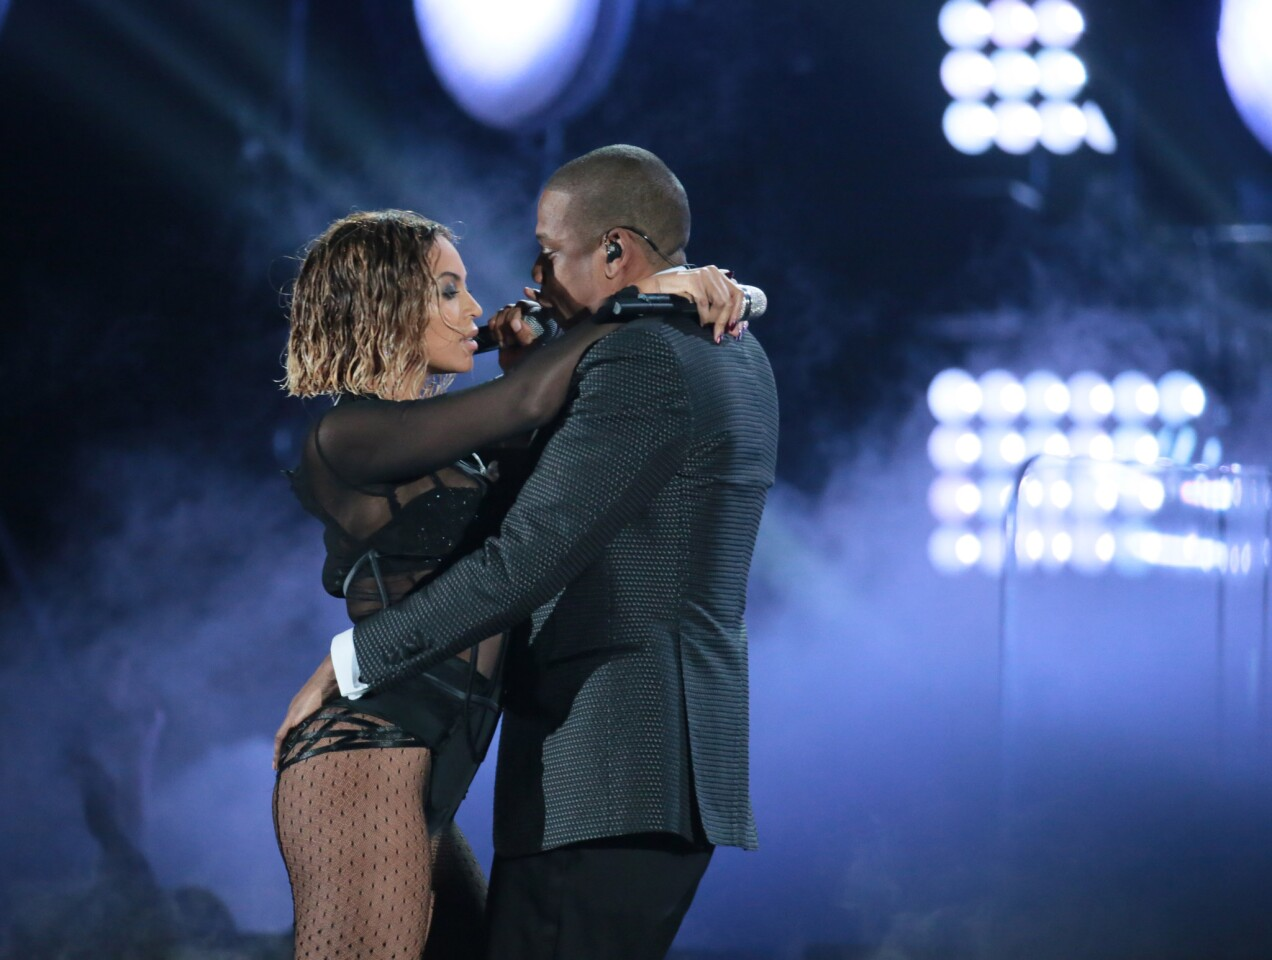 """Hip-hop siren and entrepreneur Beyonce opens the Grammys with husband and hip-hop mogul Jay Z, singing the track """"Drunk in Love."""" The pair amass massive cheers from the audience."""